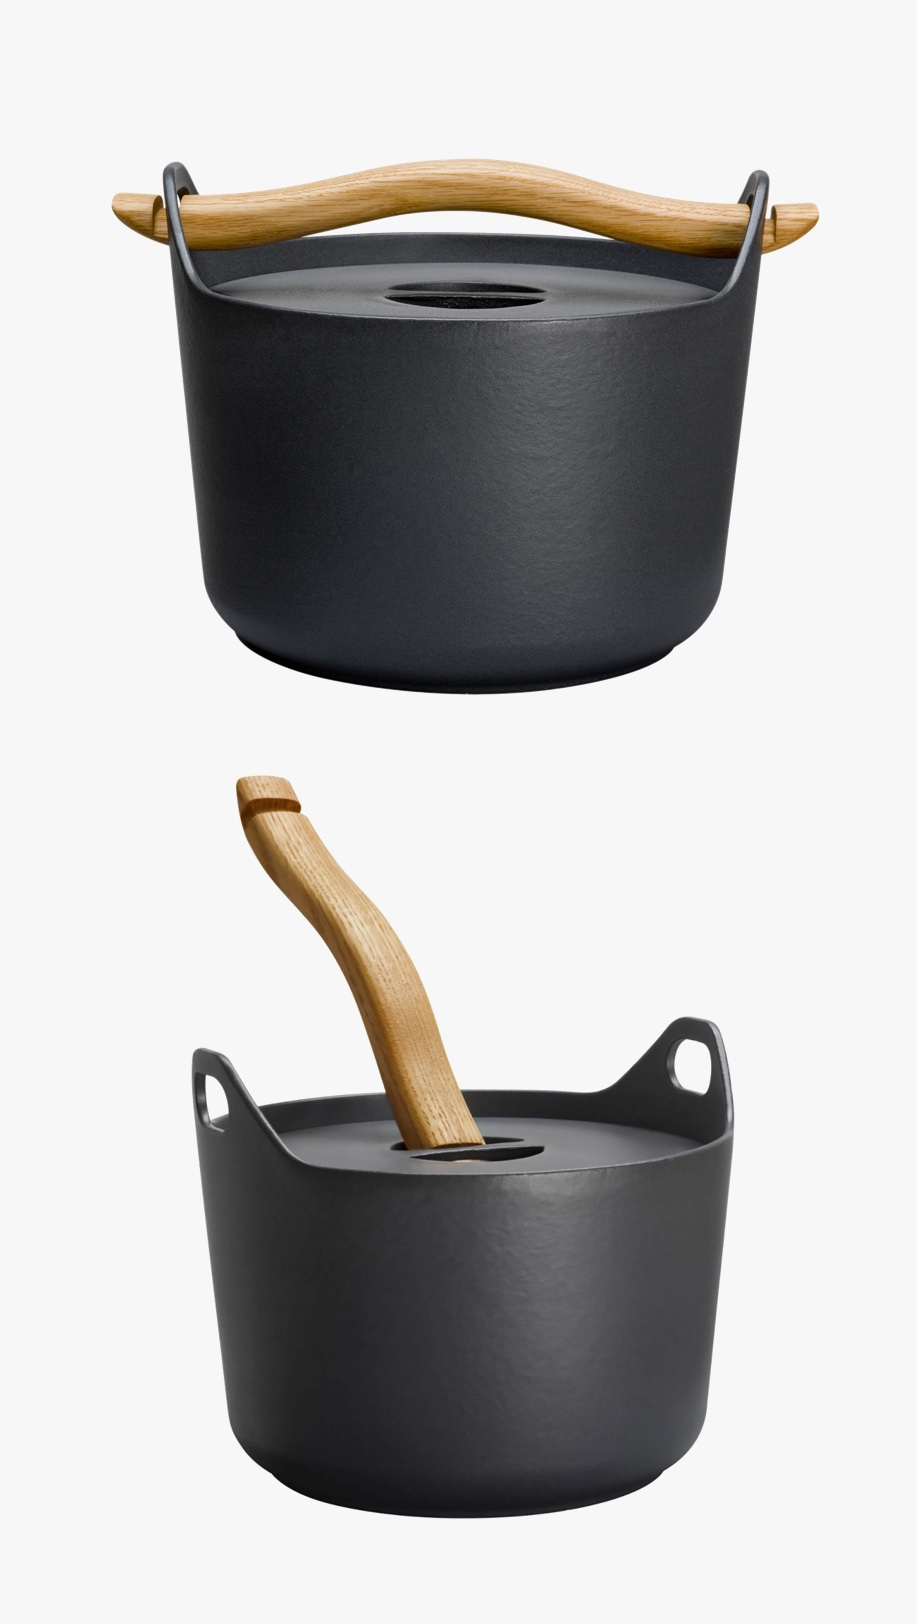 finnish-designer-cookware-gifts-for-architects-casserole-dish-with-wooden-handle